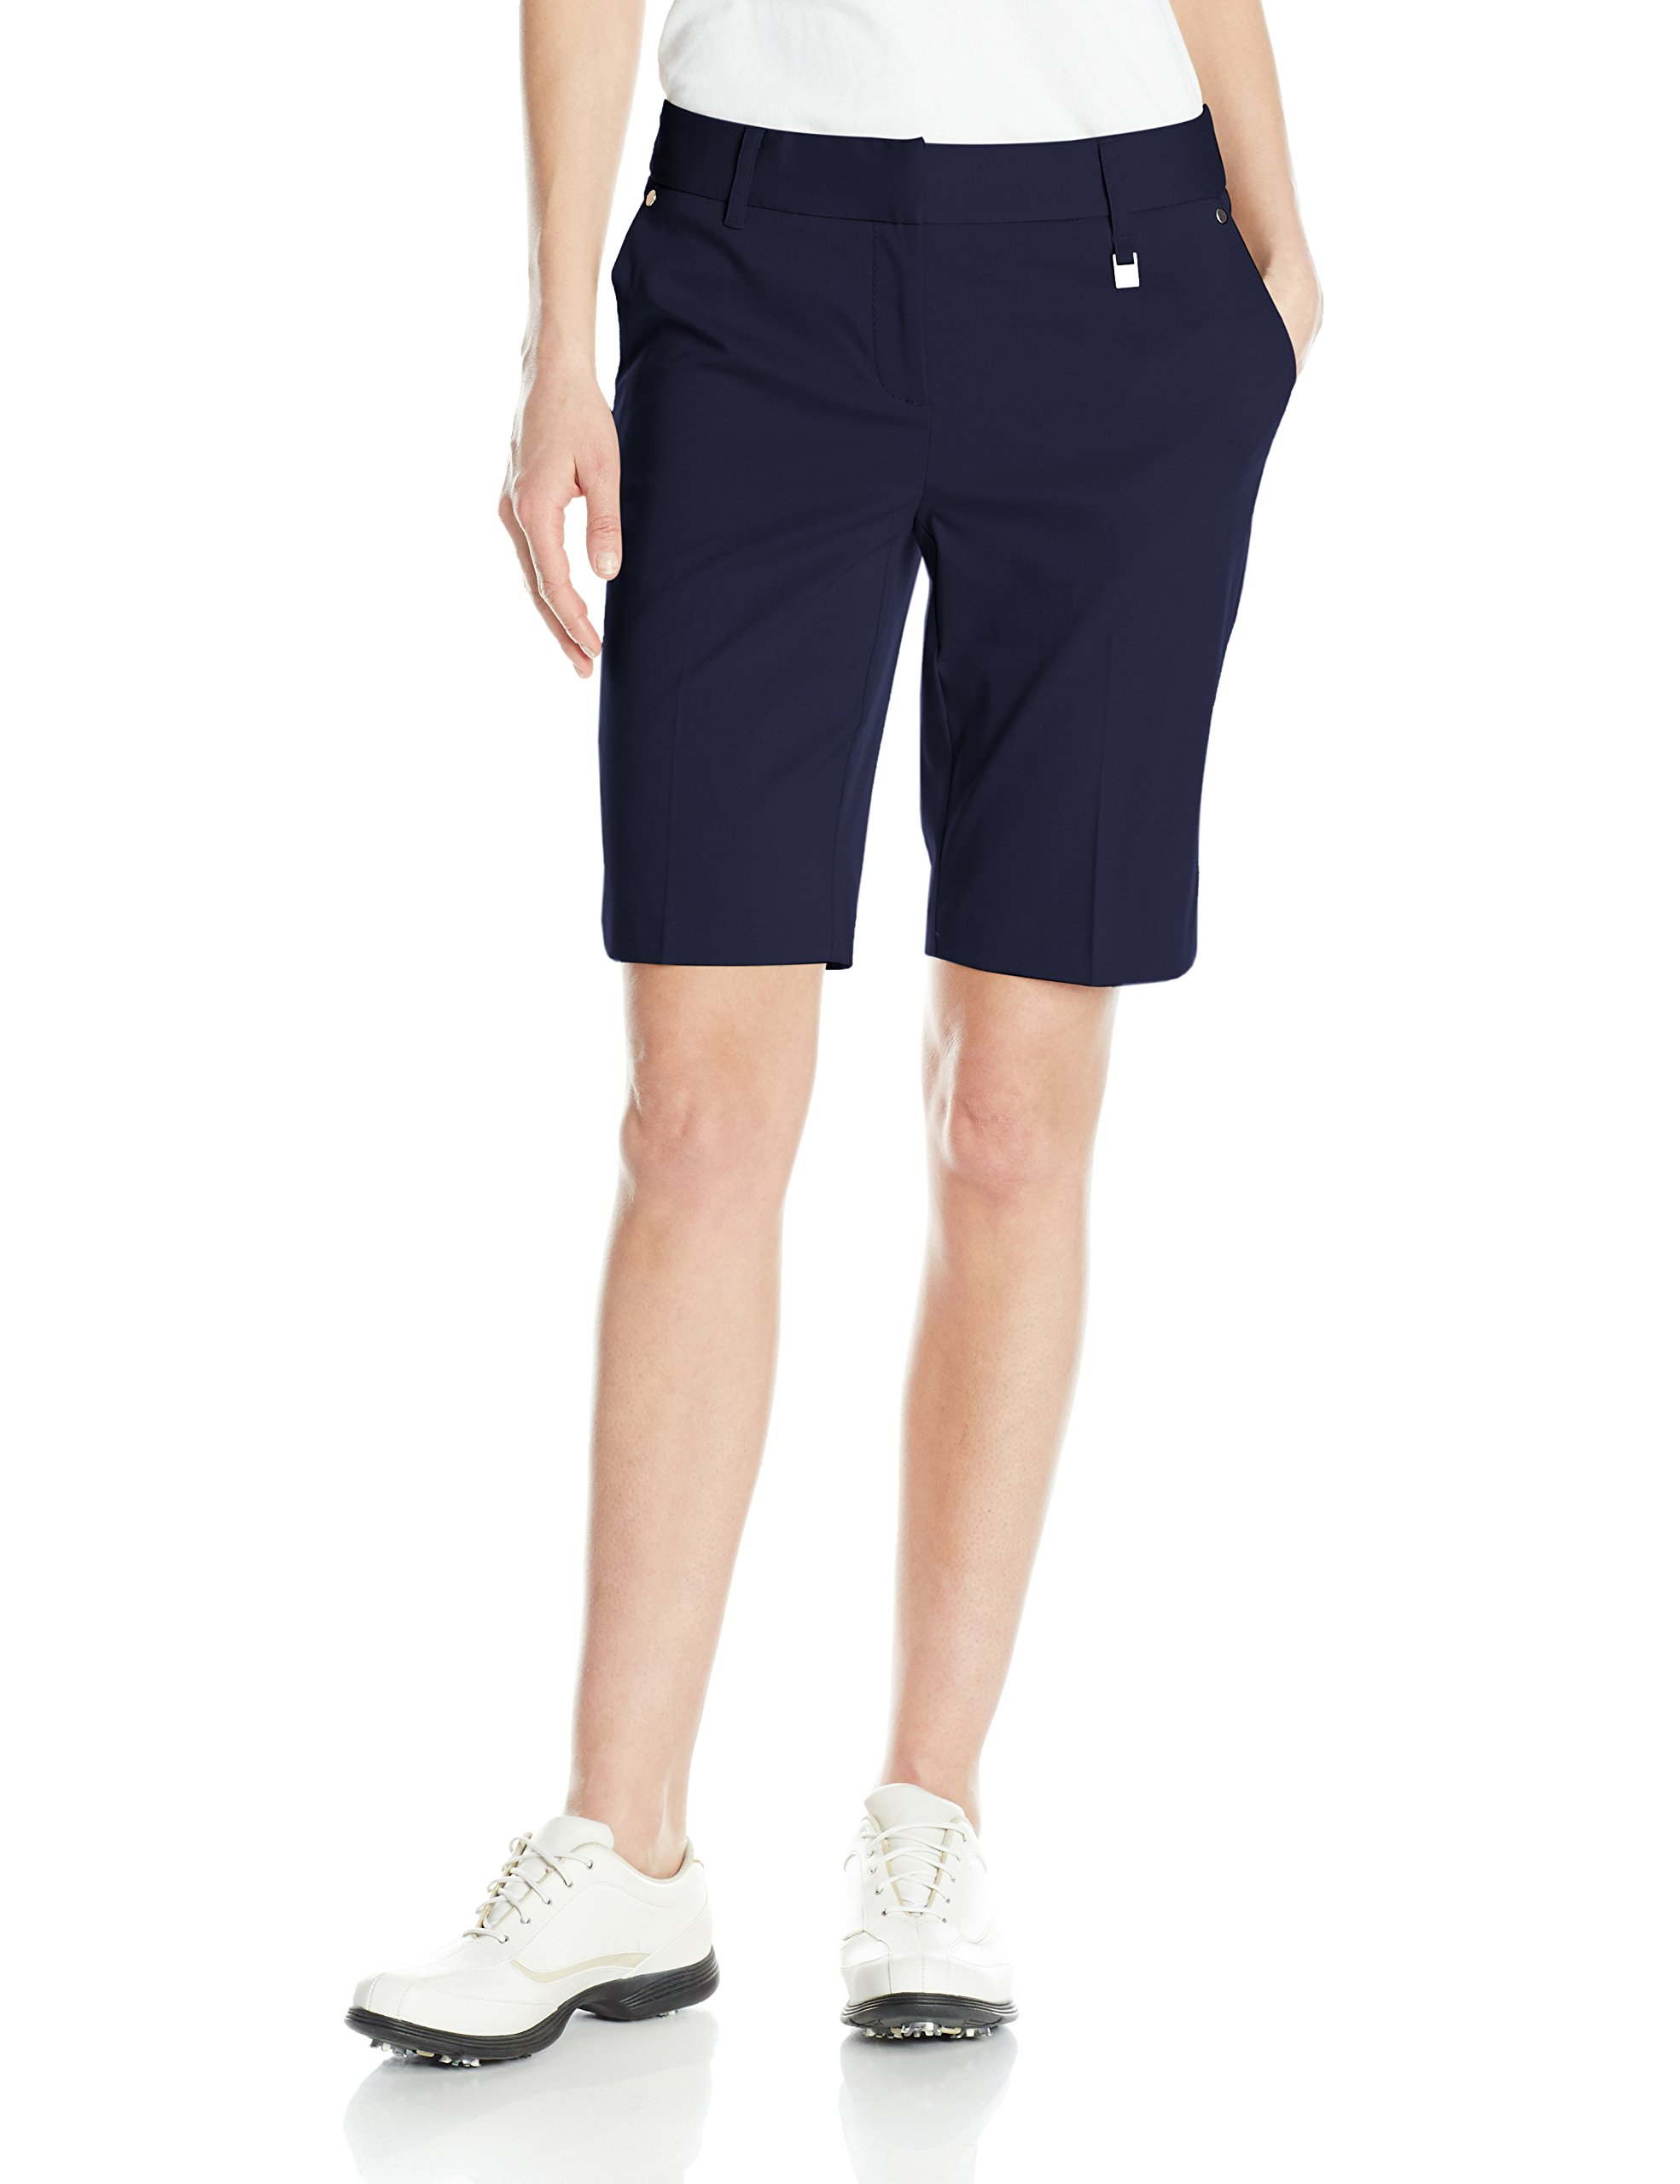 Cutter & Buck Women's CB Drytec Coast Short, Liberty Navy, 10 by Cutter